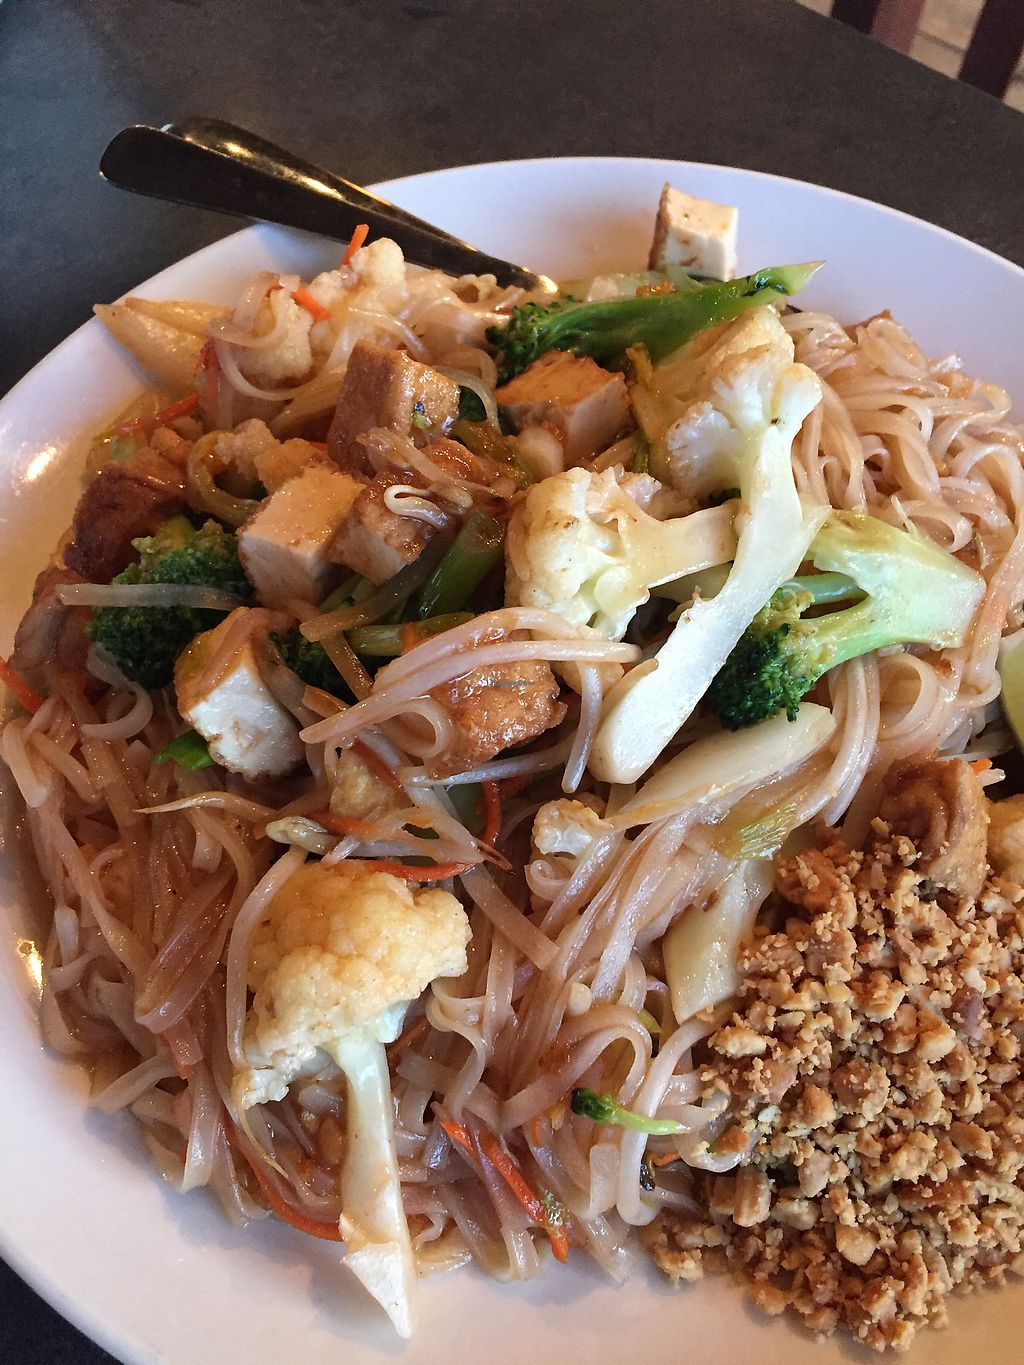 "Photo of Little Thai Place  by <a href=""/members/profile/TLC%20Veg."">TLC Veg.</a> <br/>Pad Thai!  <br/> August 25, 2017  - <a href='/contact/abuse/image/43855/296882'>Report</a>"